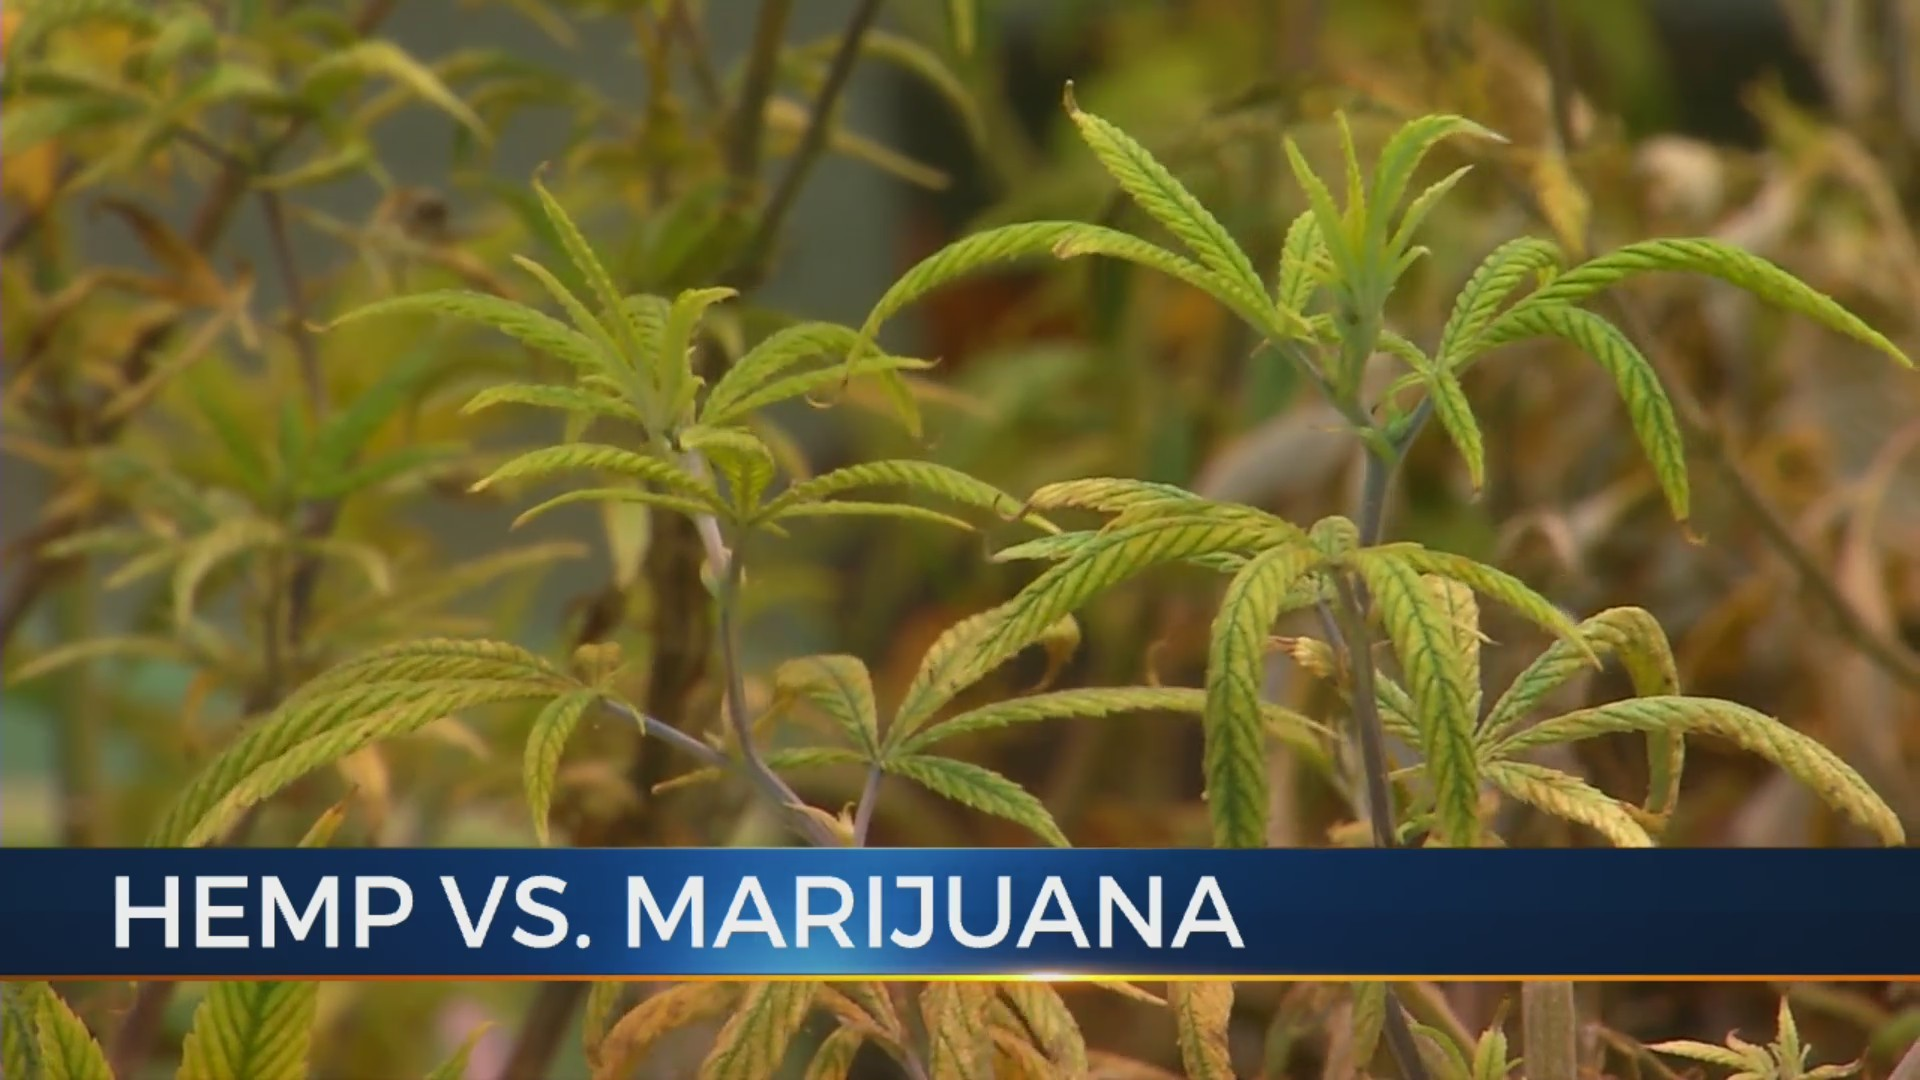 The_differences_between_hemp_and_marijua_0_20190129225545